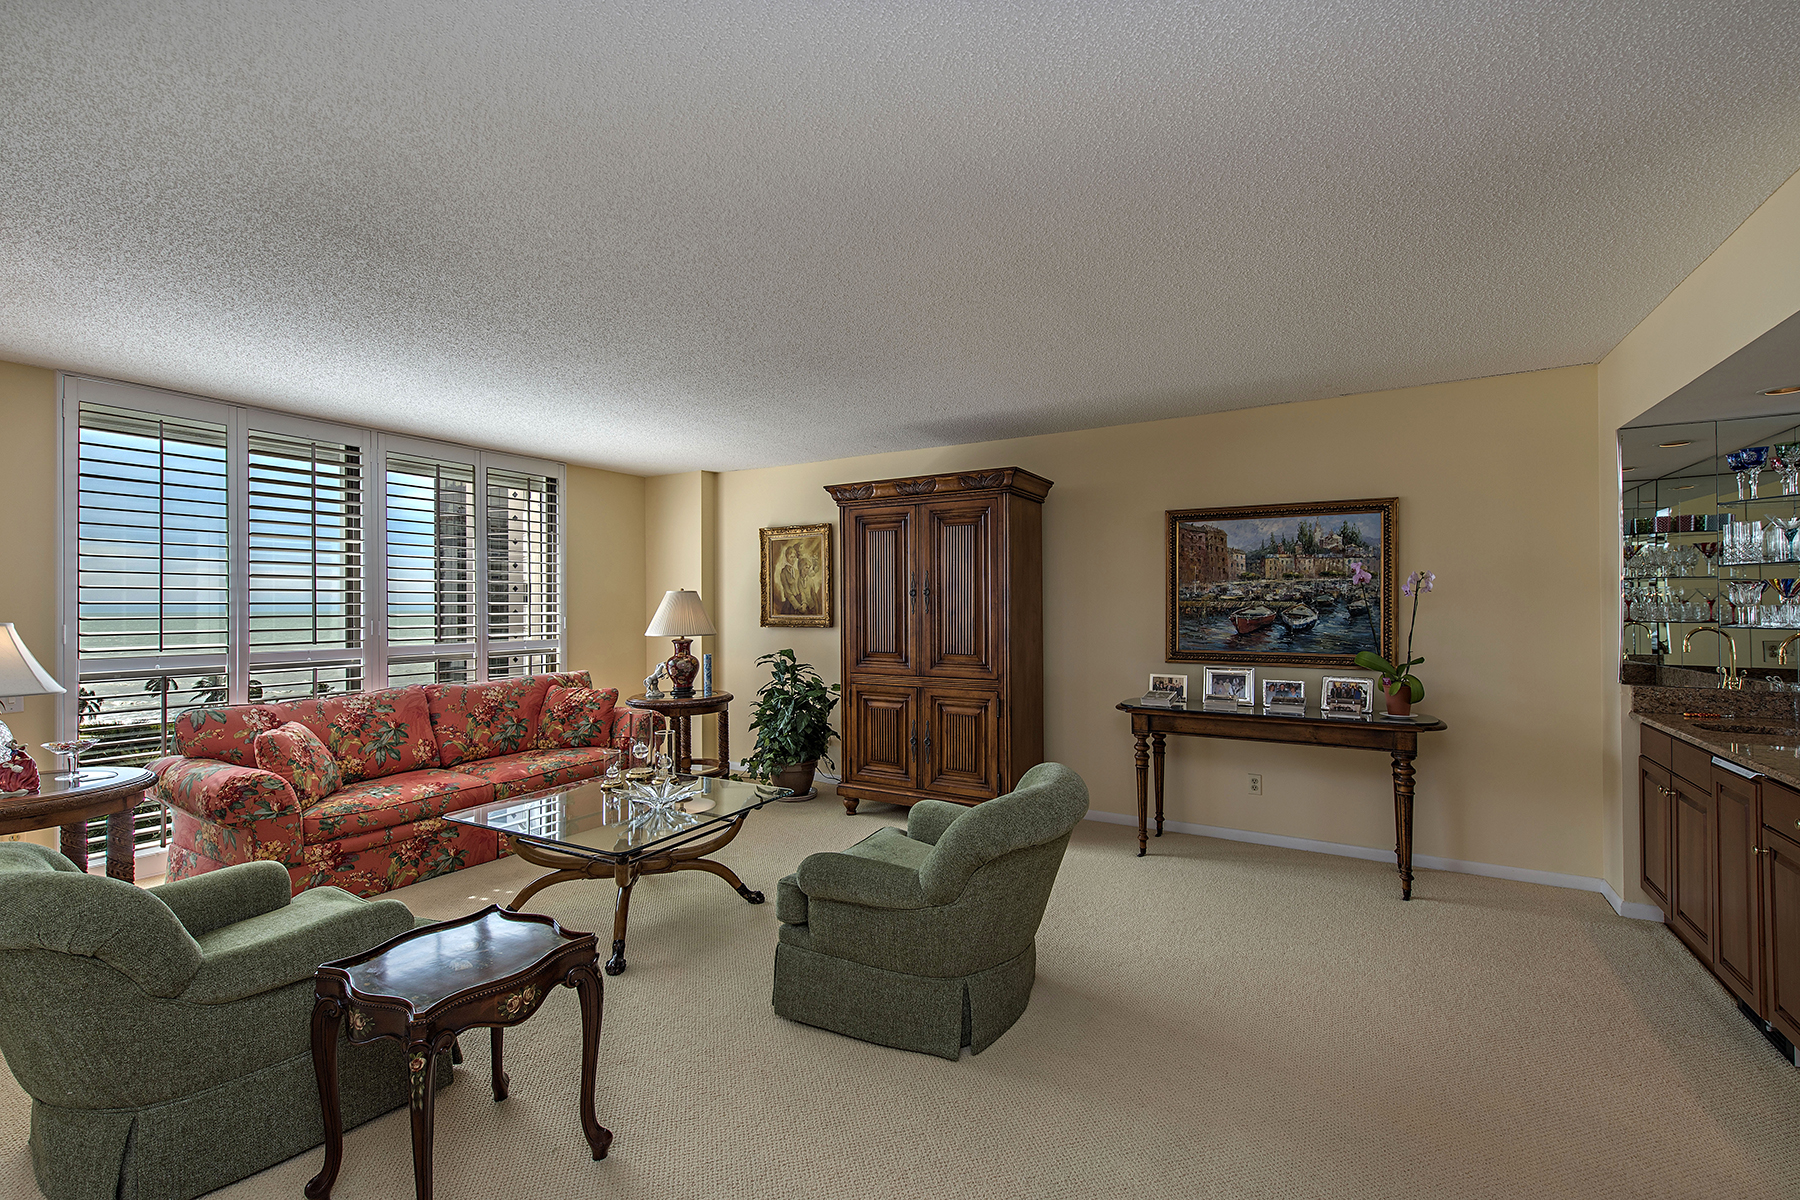 Condominium for Sale at PARK SHORE - MONACO BEACH CLUB 4401 Gulf Shore Blvd N 1007 Naples, Florida, 34103 United States